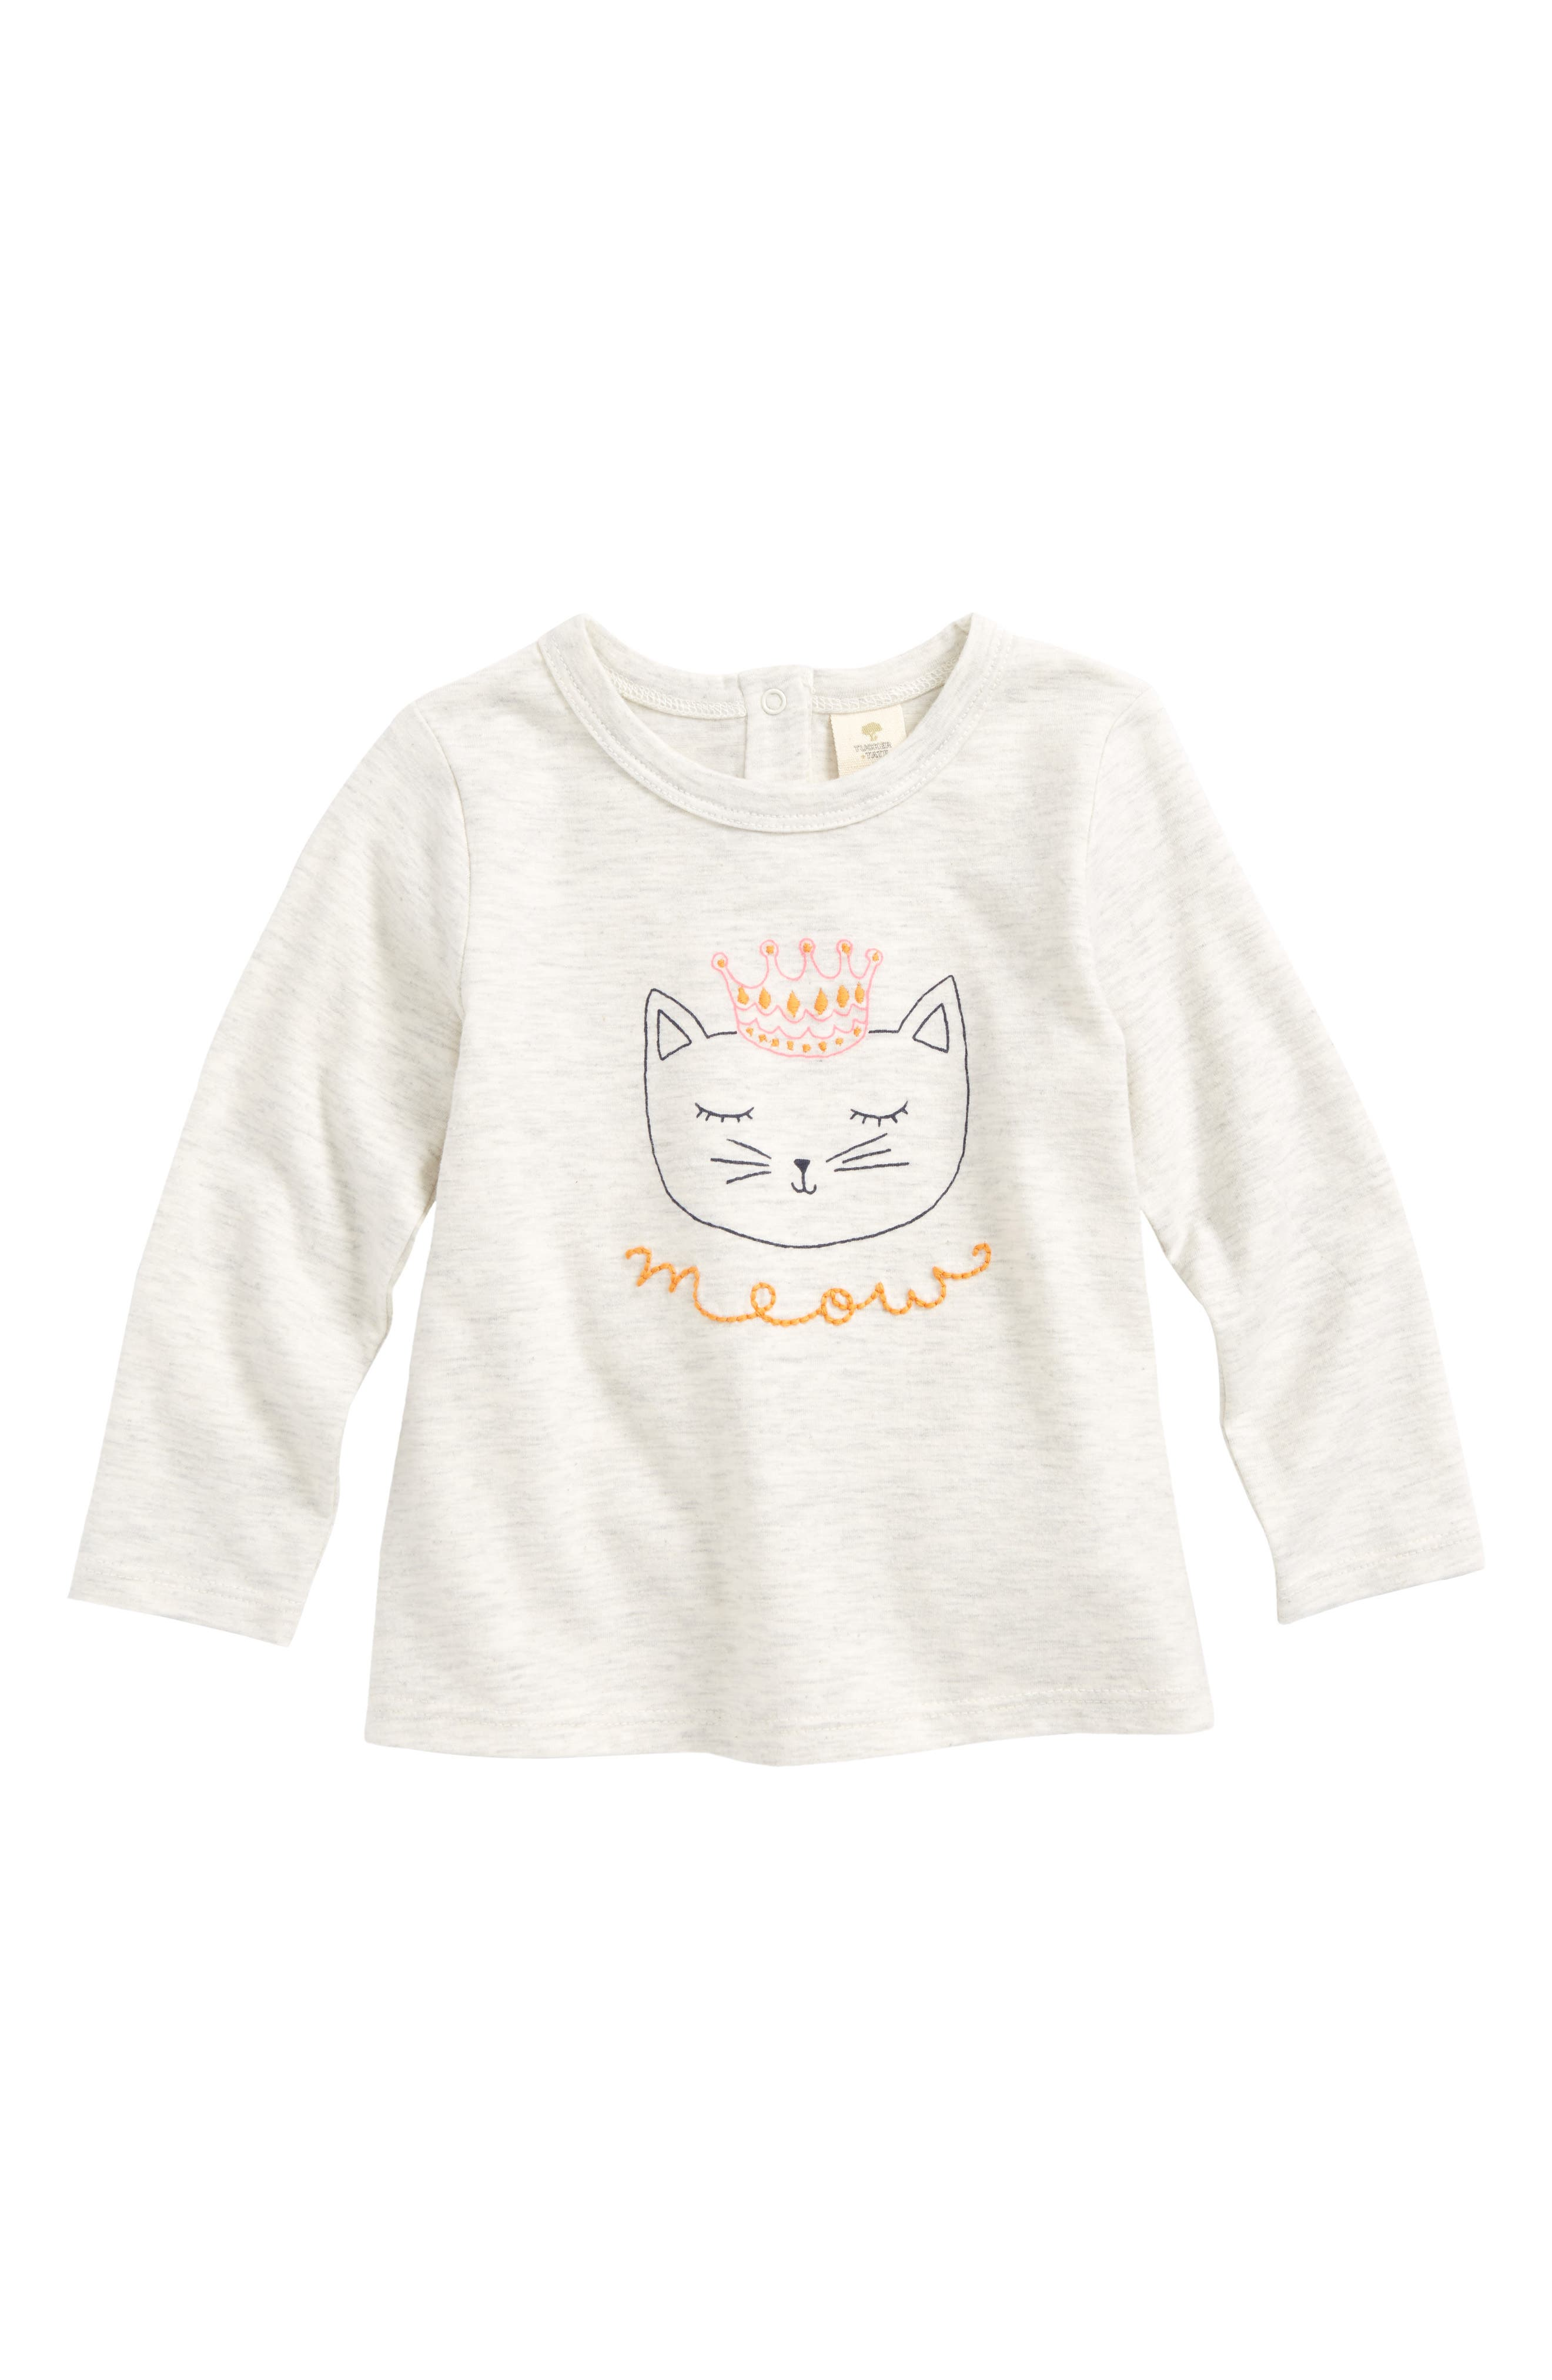 Embroidered Graphic Tee,                             Main thumbnail 1, color,                             Ivory Egret Heather Crown Cat